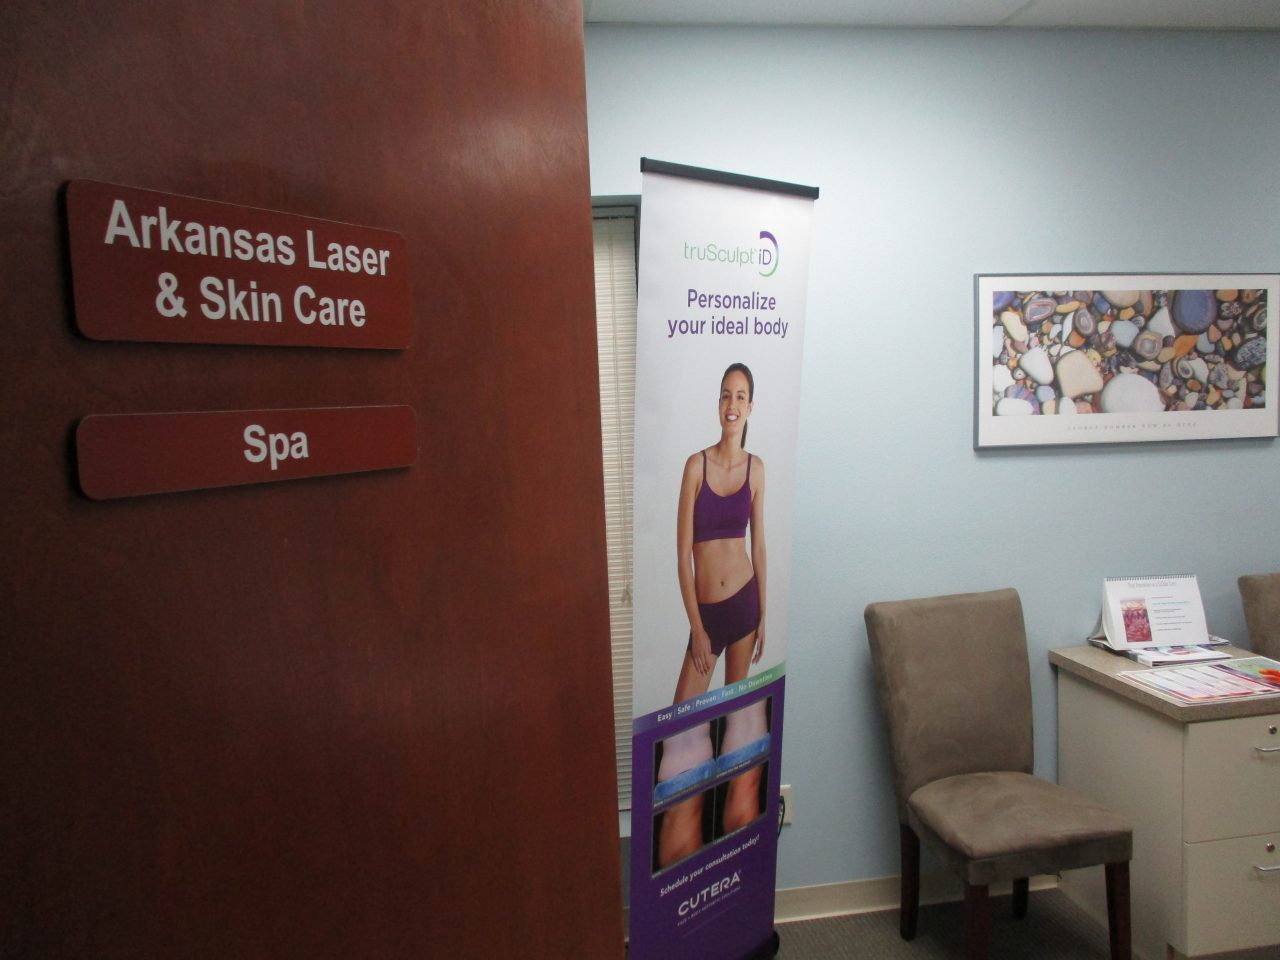 Arkansas Laser and Skin Care Retail Spotlight Tree of life seeds image